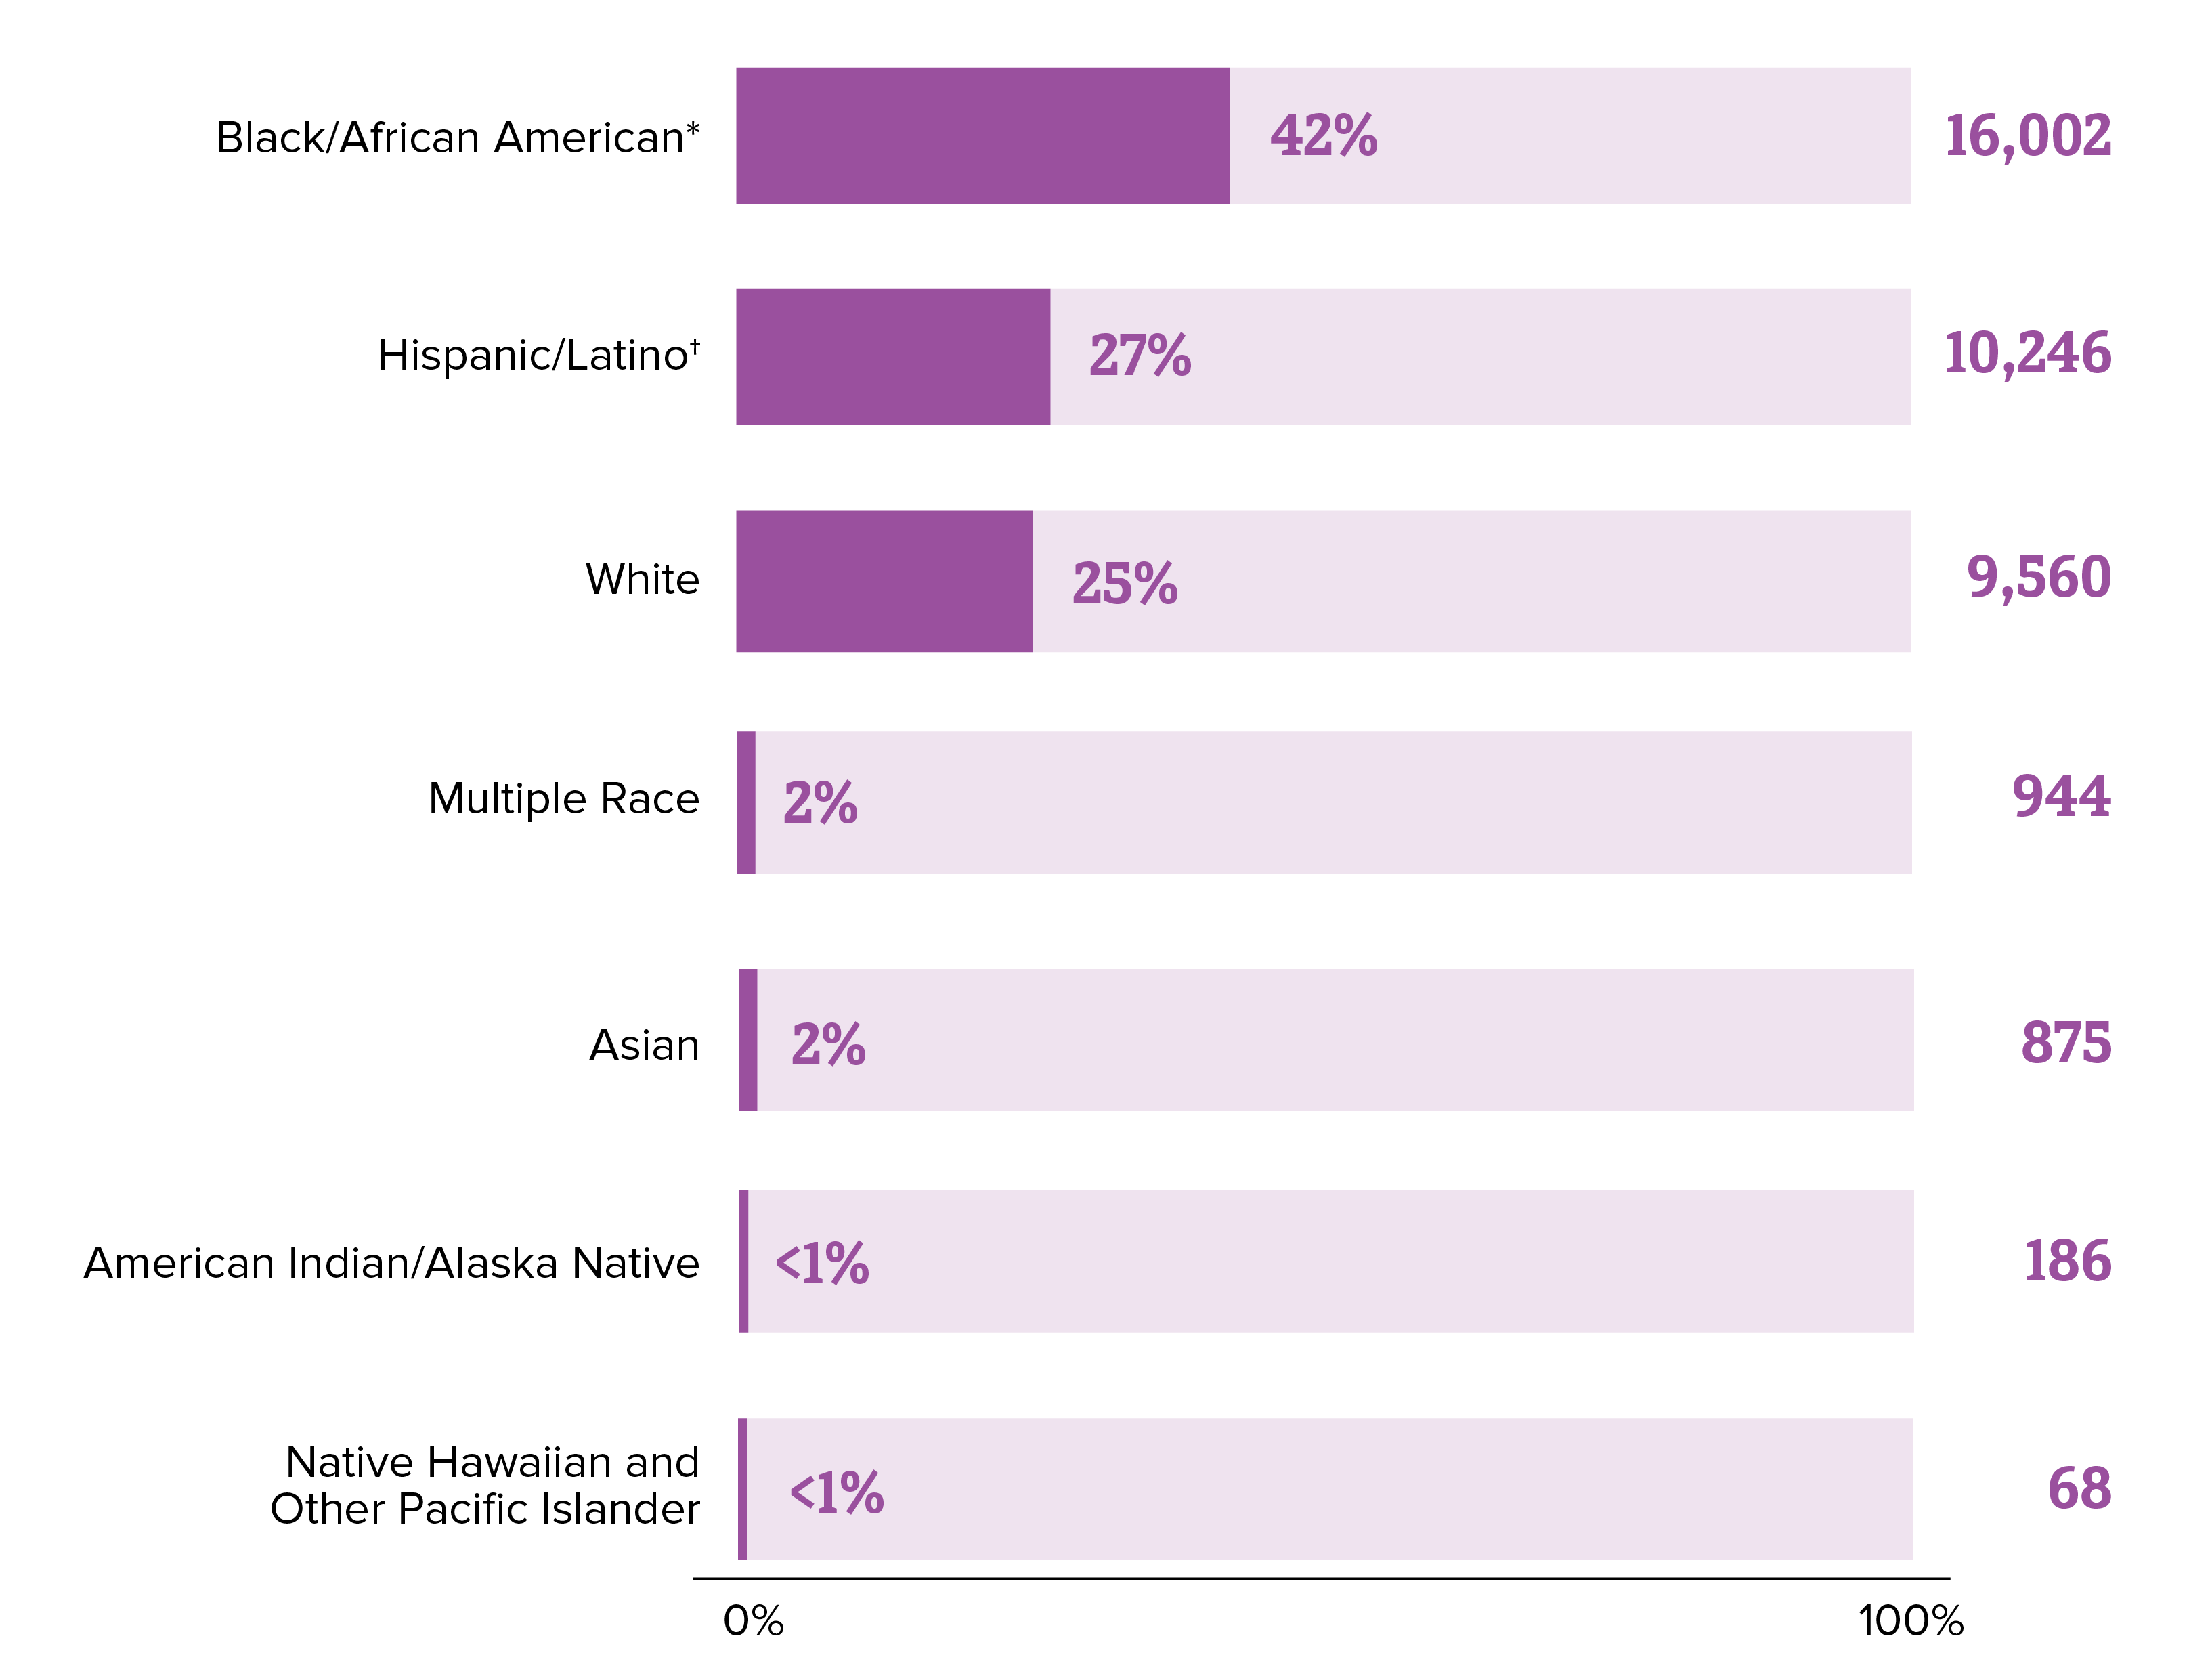 This bar chart shows HIV diagnoses in the United States and dependent areas in 2018 by race/ethnicity. Blacks/African Americans made up 42% of new HIV diagnoses, Hispanics/Latinos made up 27%, whites made up 25%, Asians made up 2%, multiple races made up 2%, American Indians/Alaska Natives made up less than 1%, and Native Hawaiians and Other Pacific Islanders made up less than 1% of new HIV diagnoses.